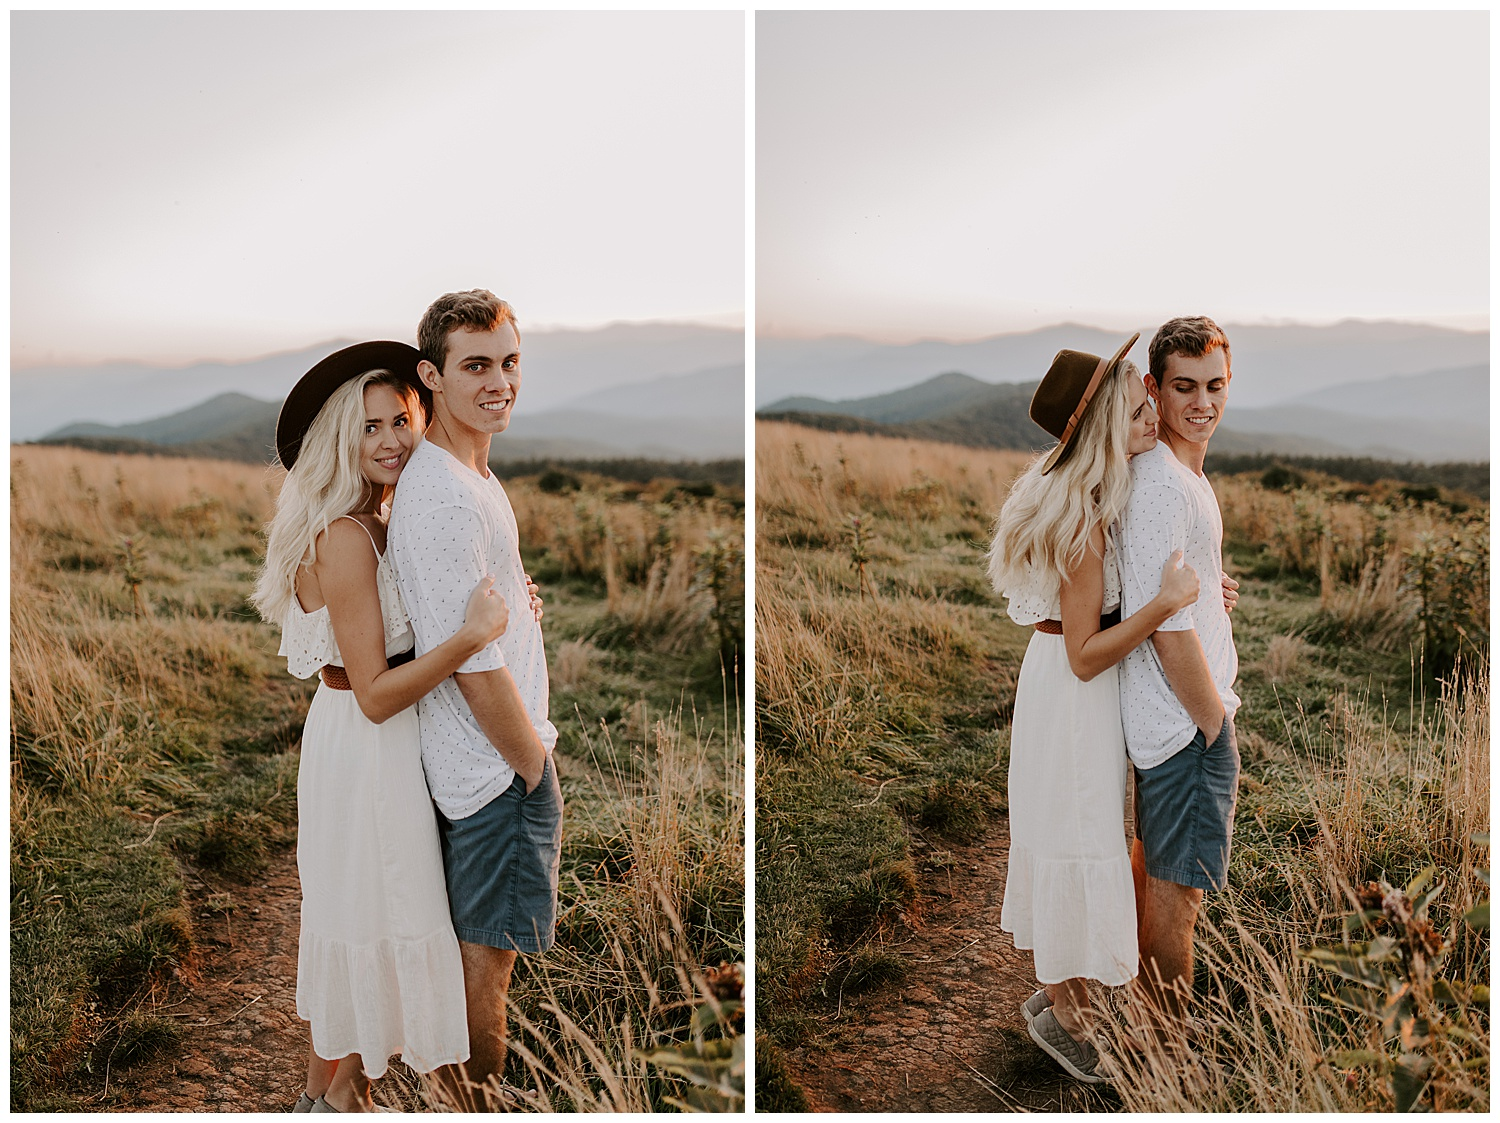 HANNAH_NICK_MAXPATCH_ENGAGEMENT2019-09-05_0027.jpg